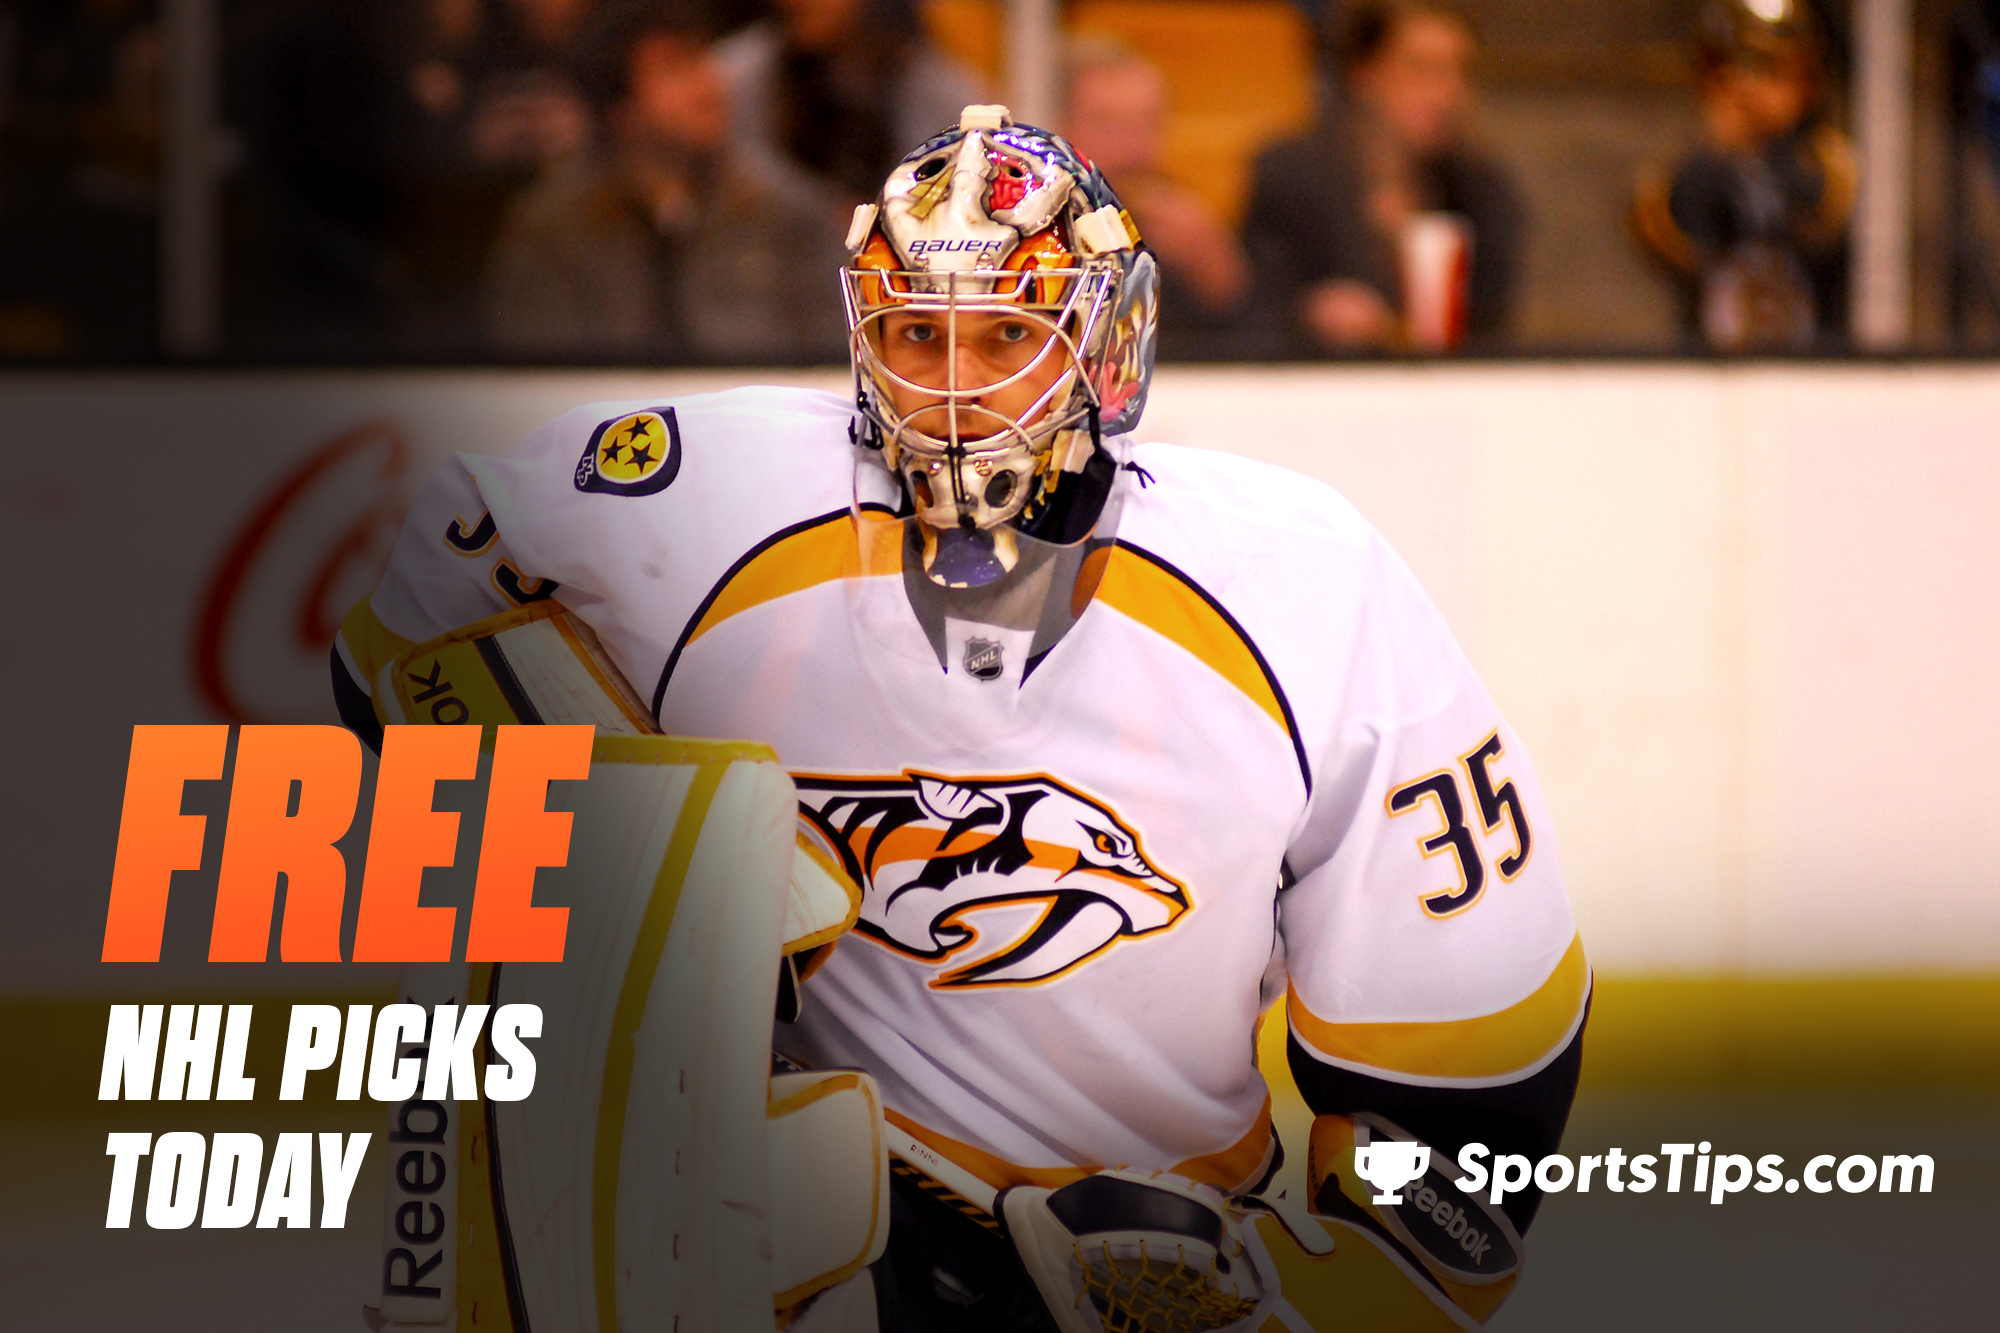 Free NHL Picks Today for Saturday, January 16th, 2021